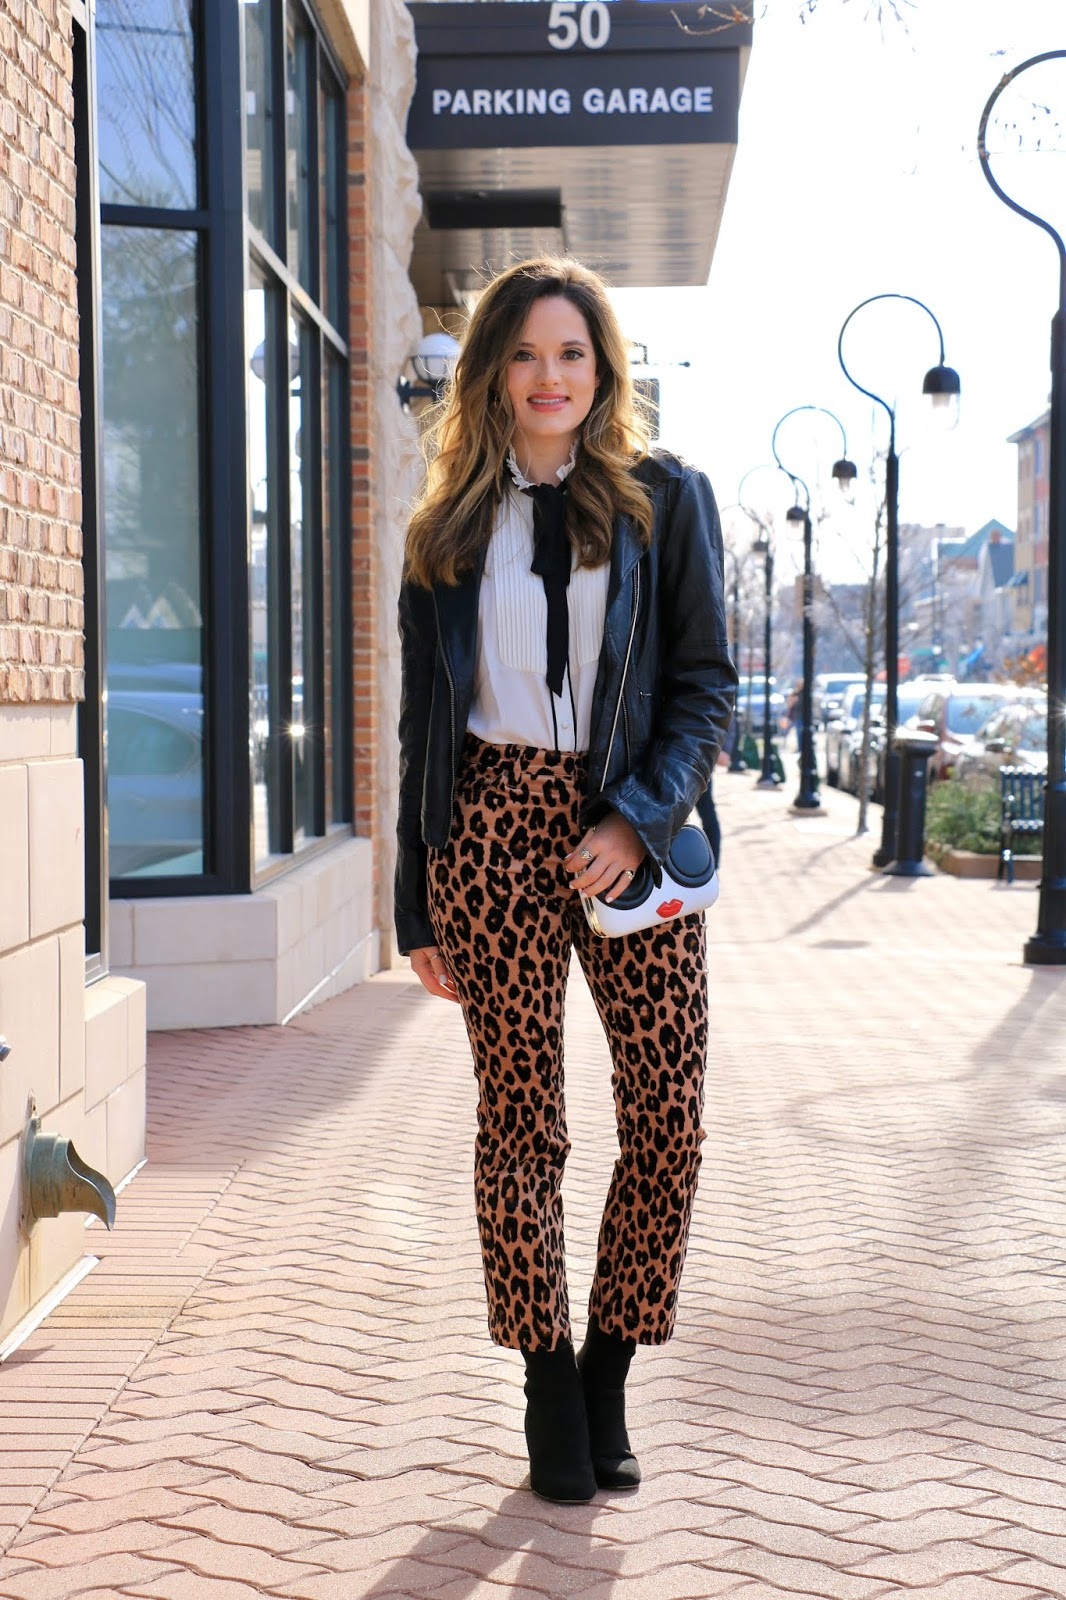 Nyc fashion blogger Kathleen Harper's leopard outfit idea